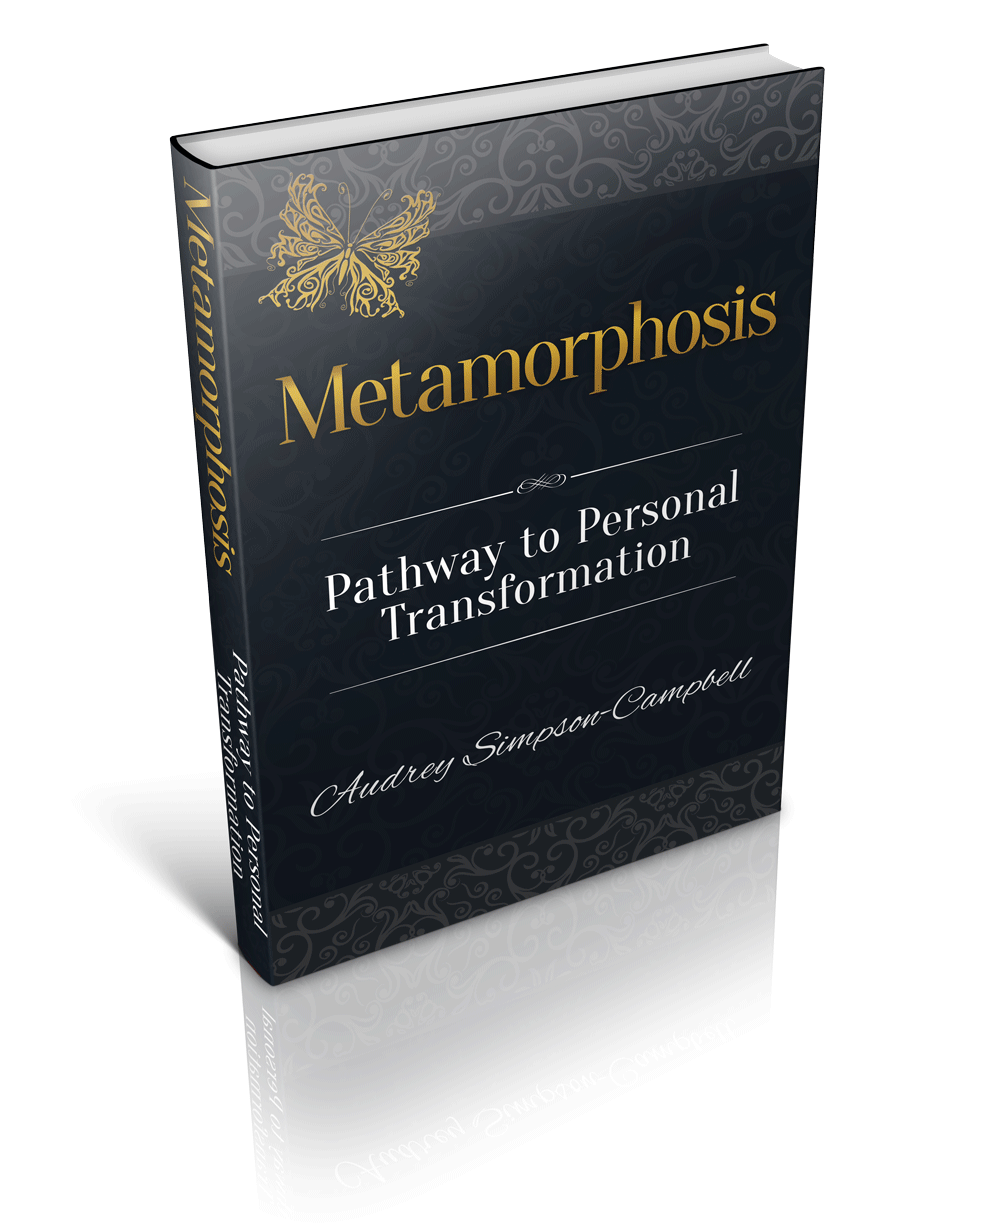 Metamorphosis - Pathway to Personal Transformation - Copy